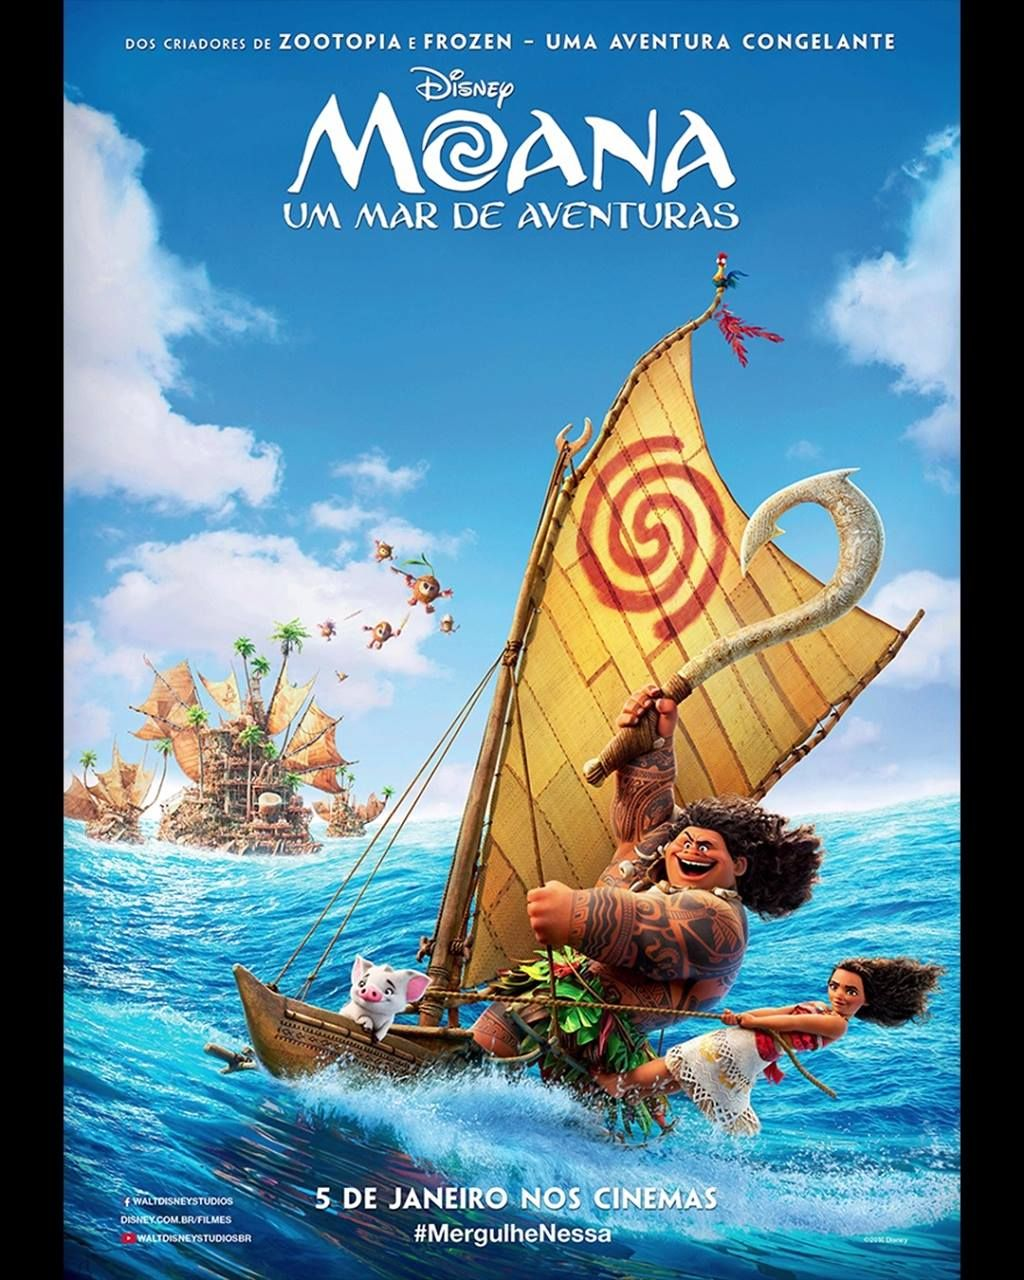 Overwhelmed By Your Excitement For Moana! The Beauty And